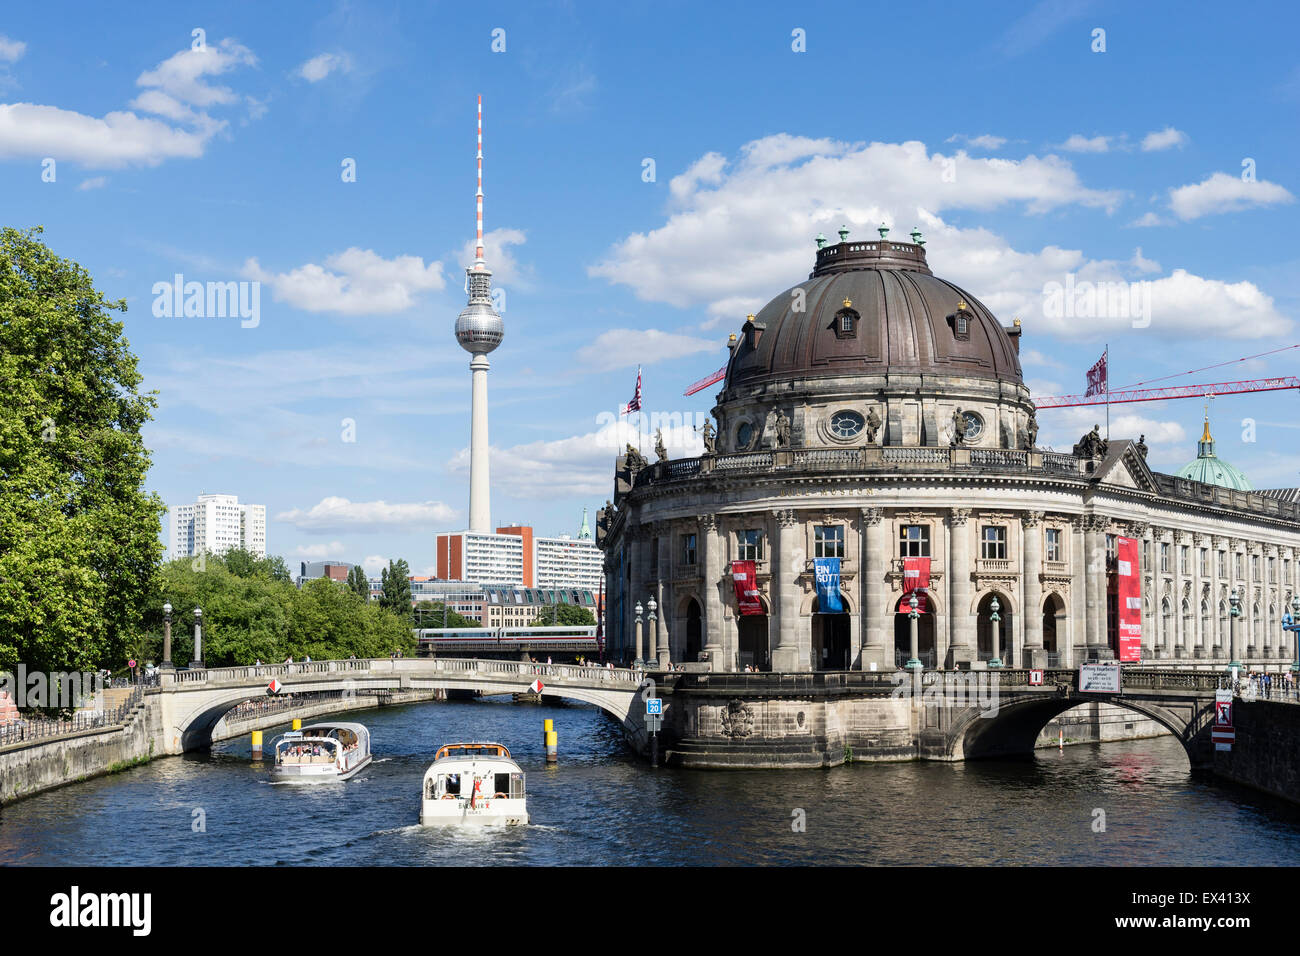 View of Bode Museum and Television Tower or Fernsehturm in Berlin Germany - Stock Image